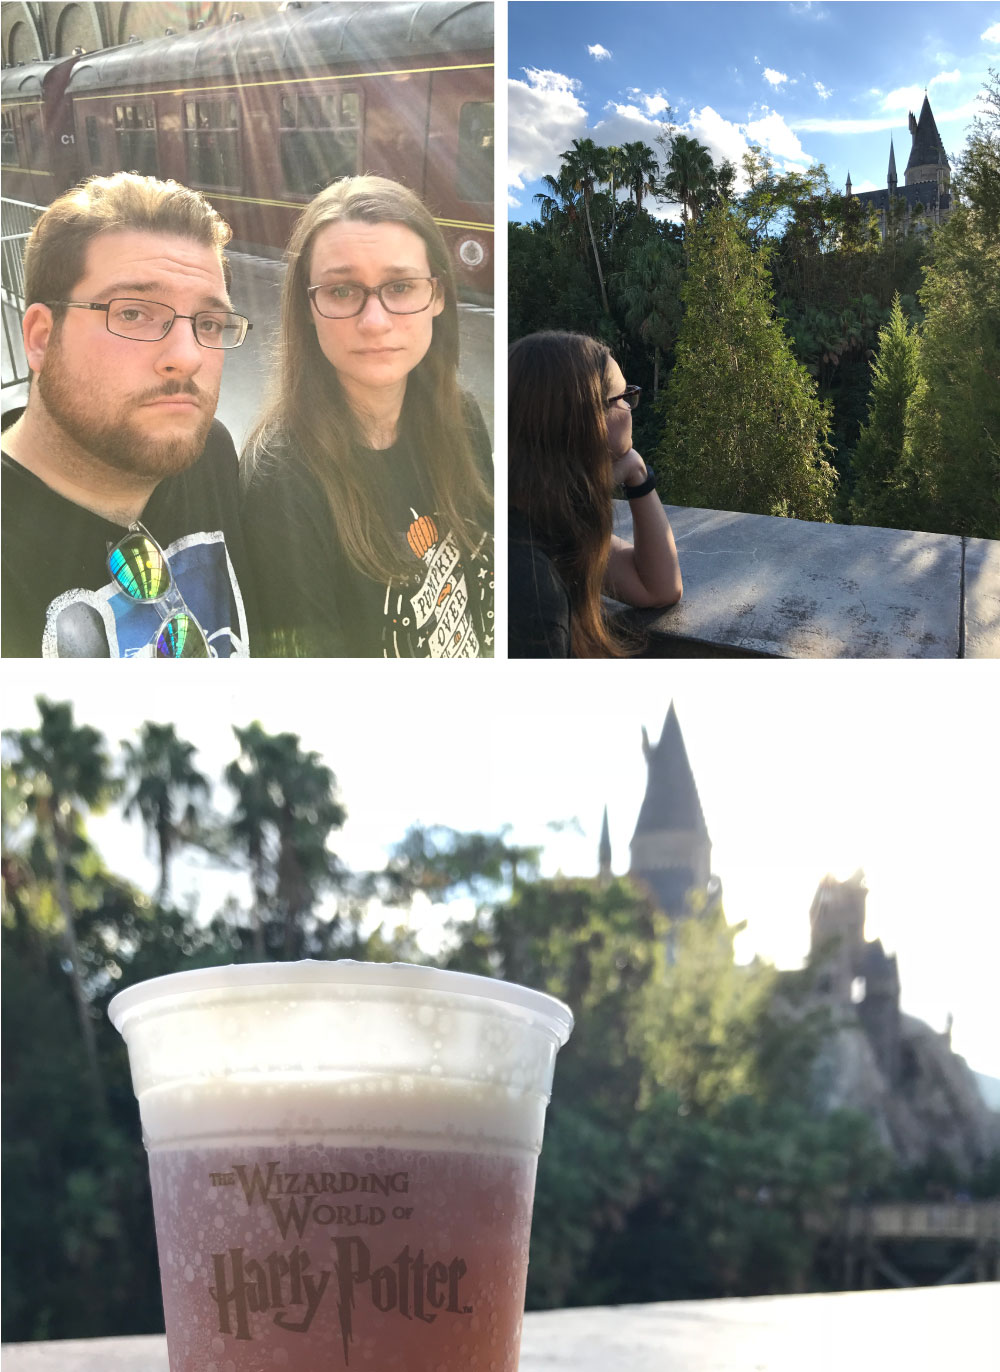 Fall Fun Series | A Magical Time of Year - Our Honeymoon at the Wizarding World of Harry Potter